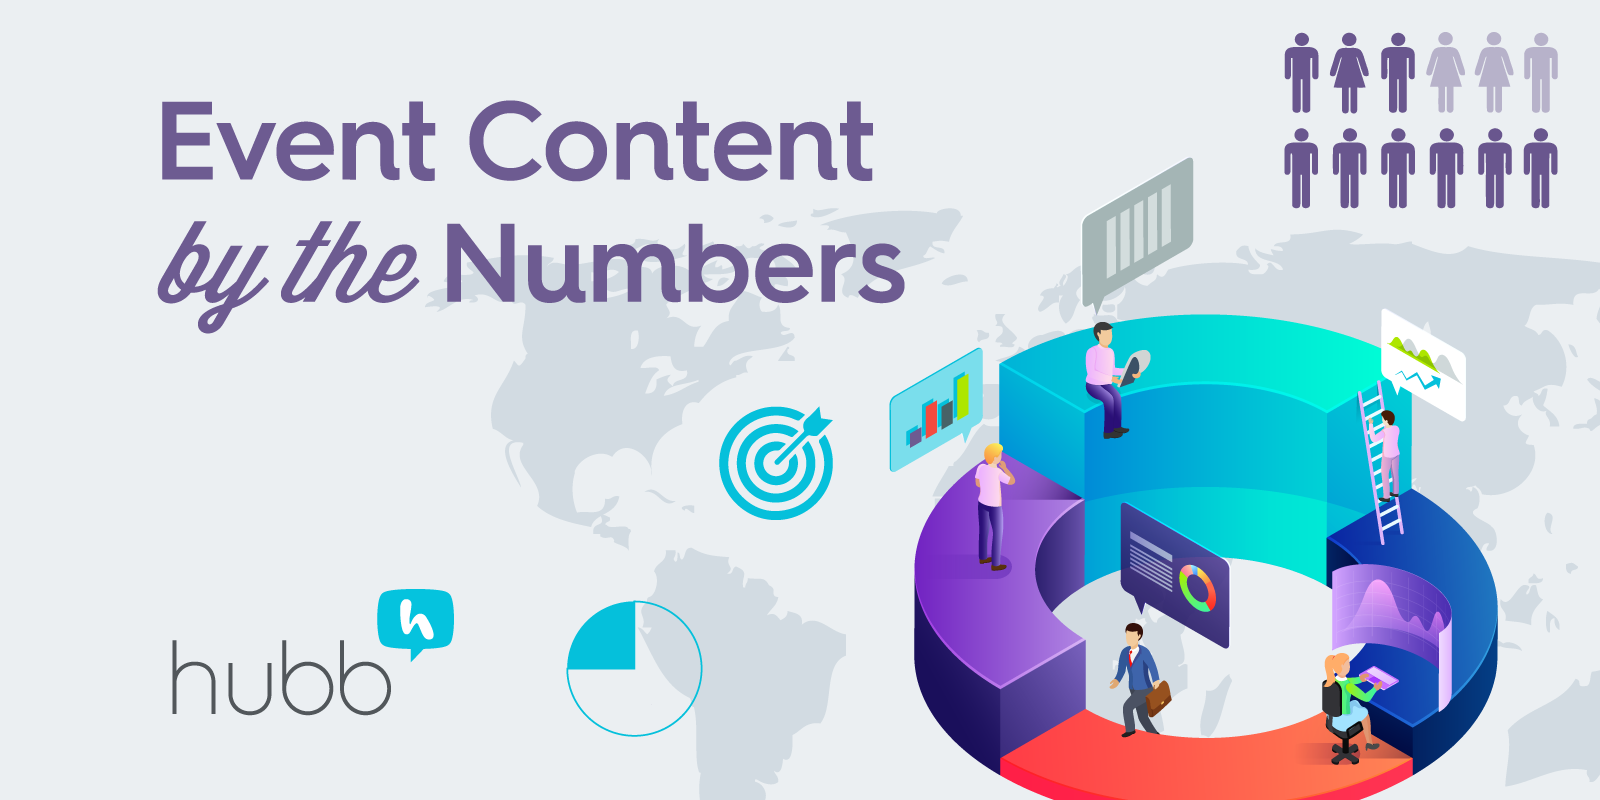 EventContent-by-the-Numbers-Social